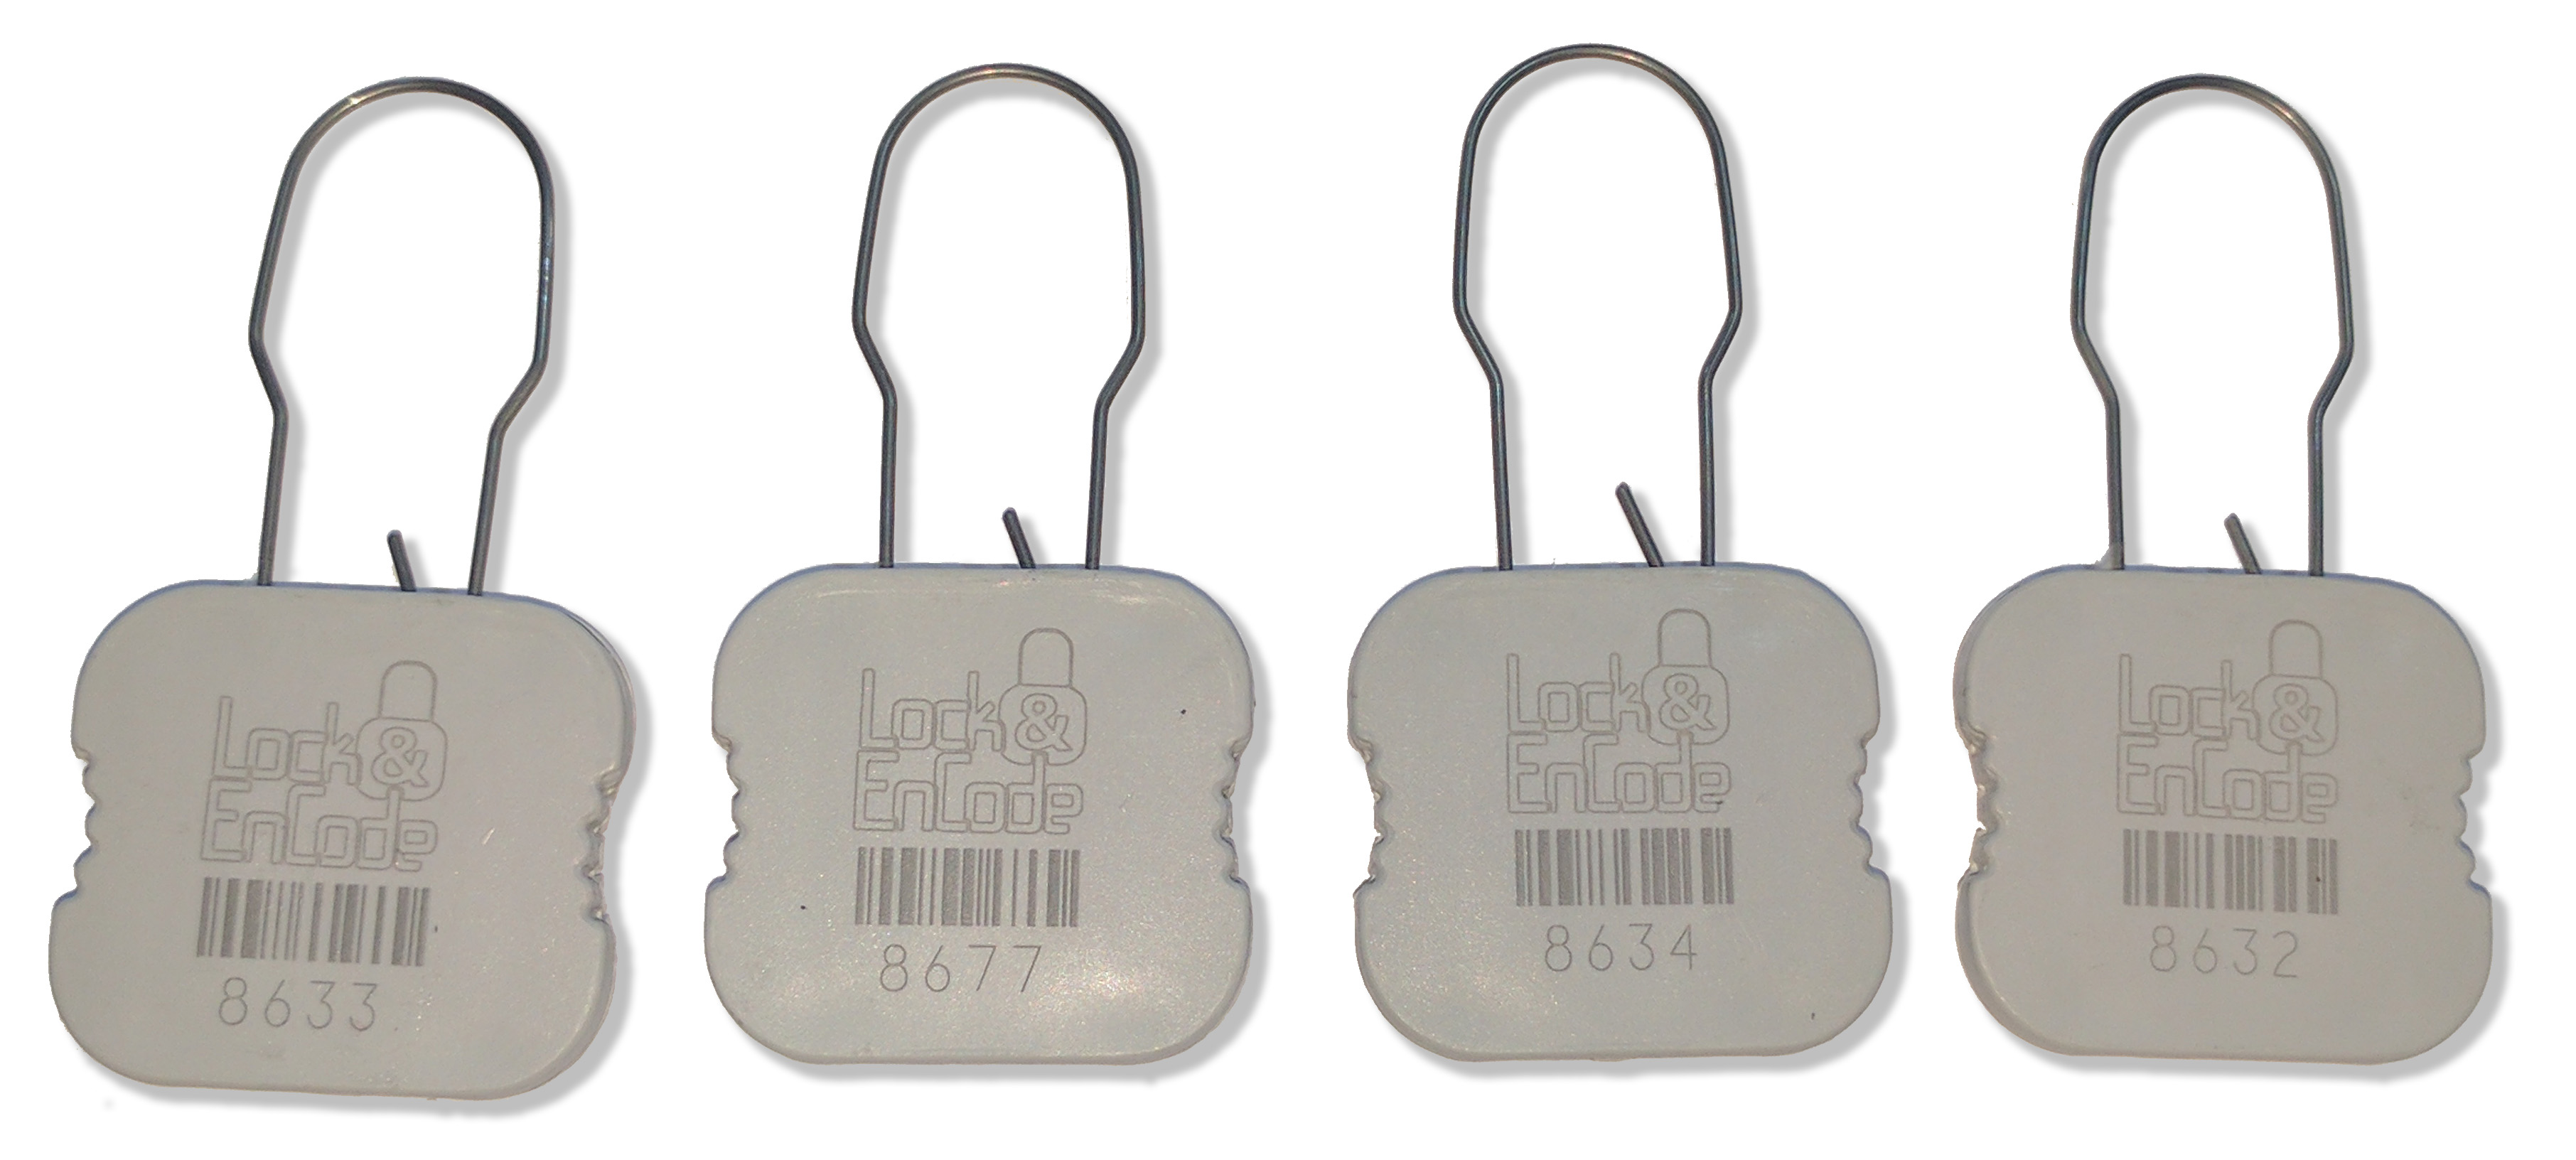 CYBRA RFID locking seals are tamper evident, rugged, and inexpensive.